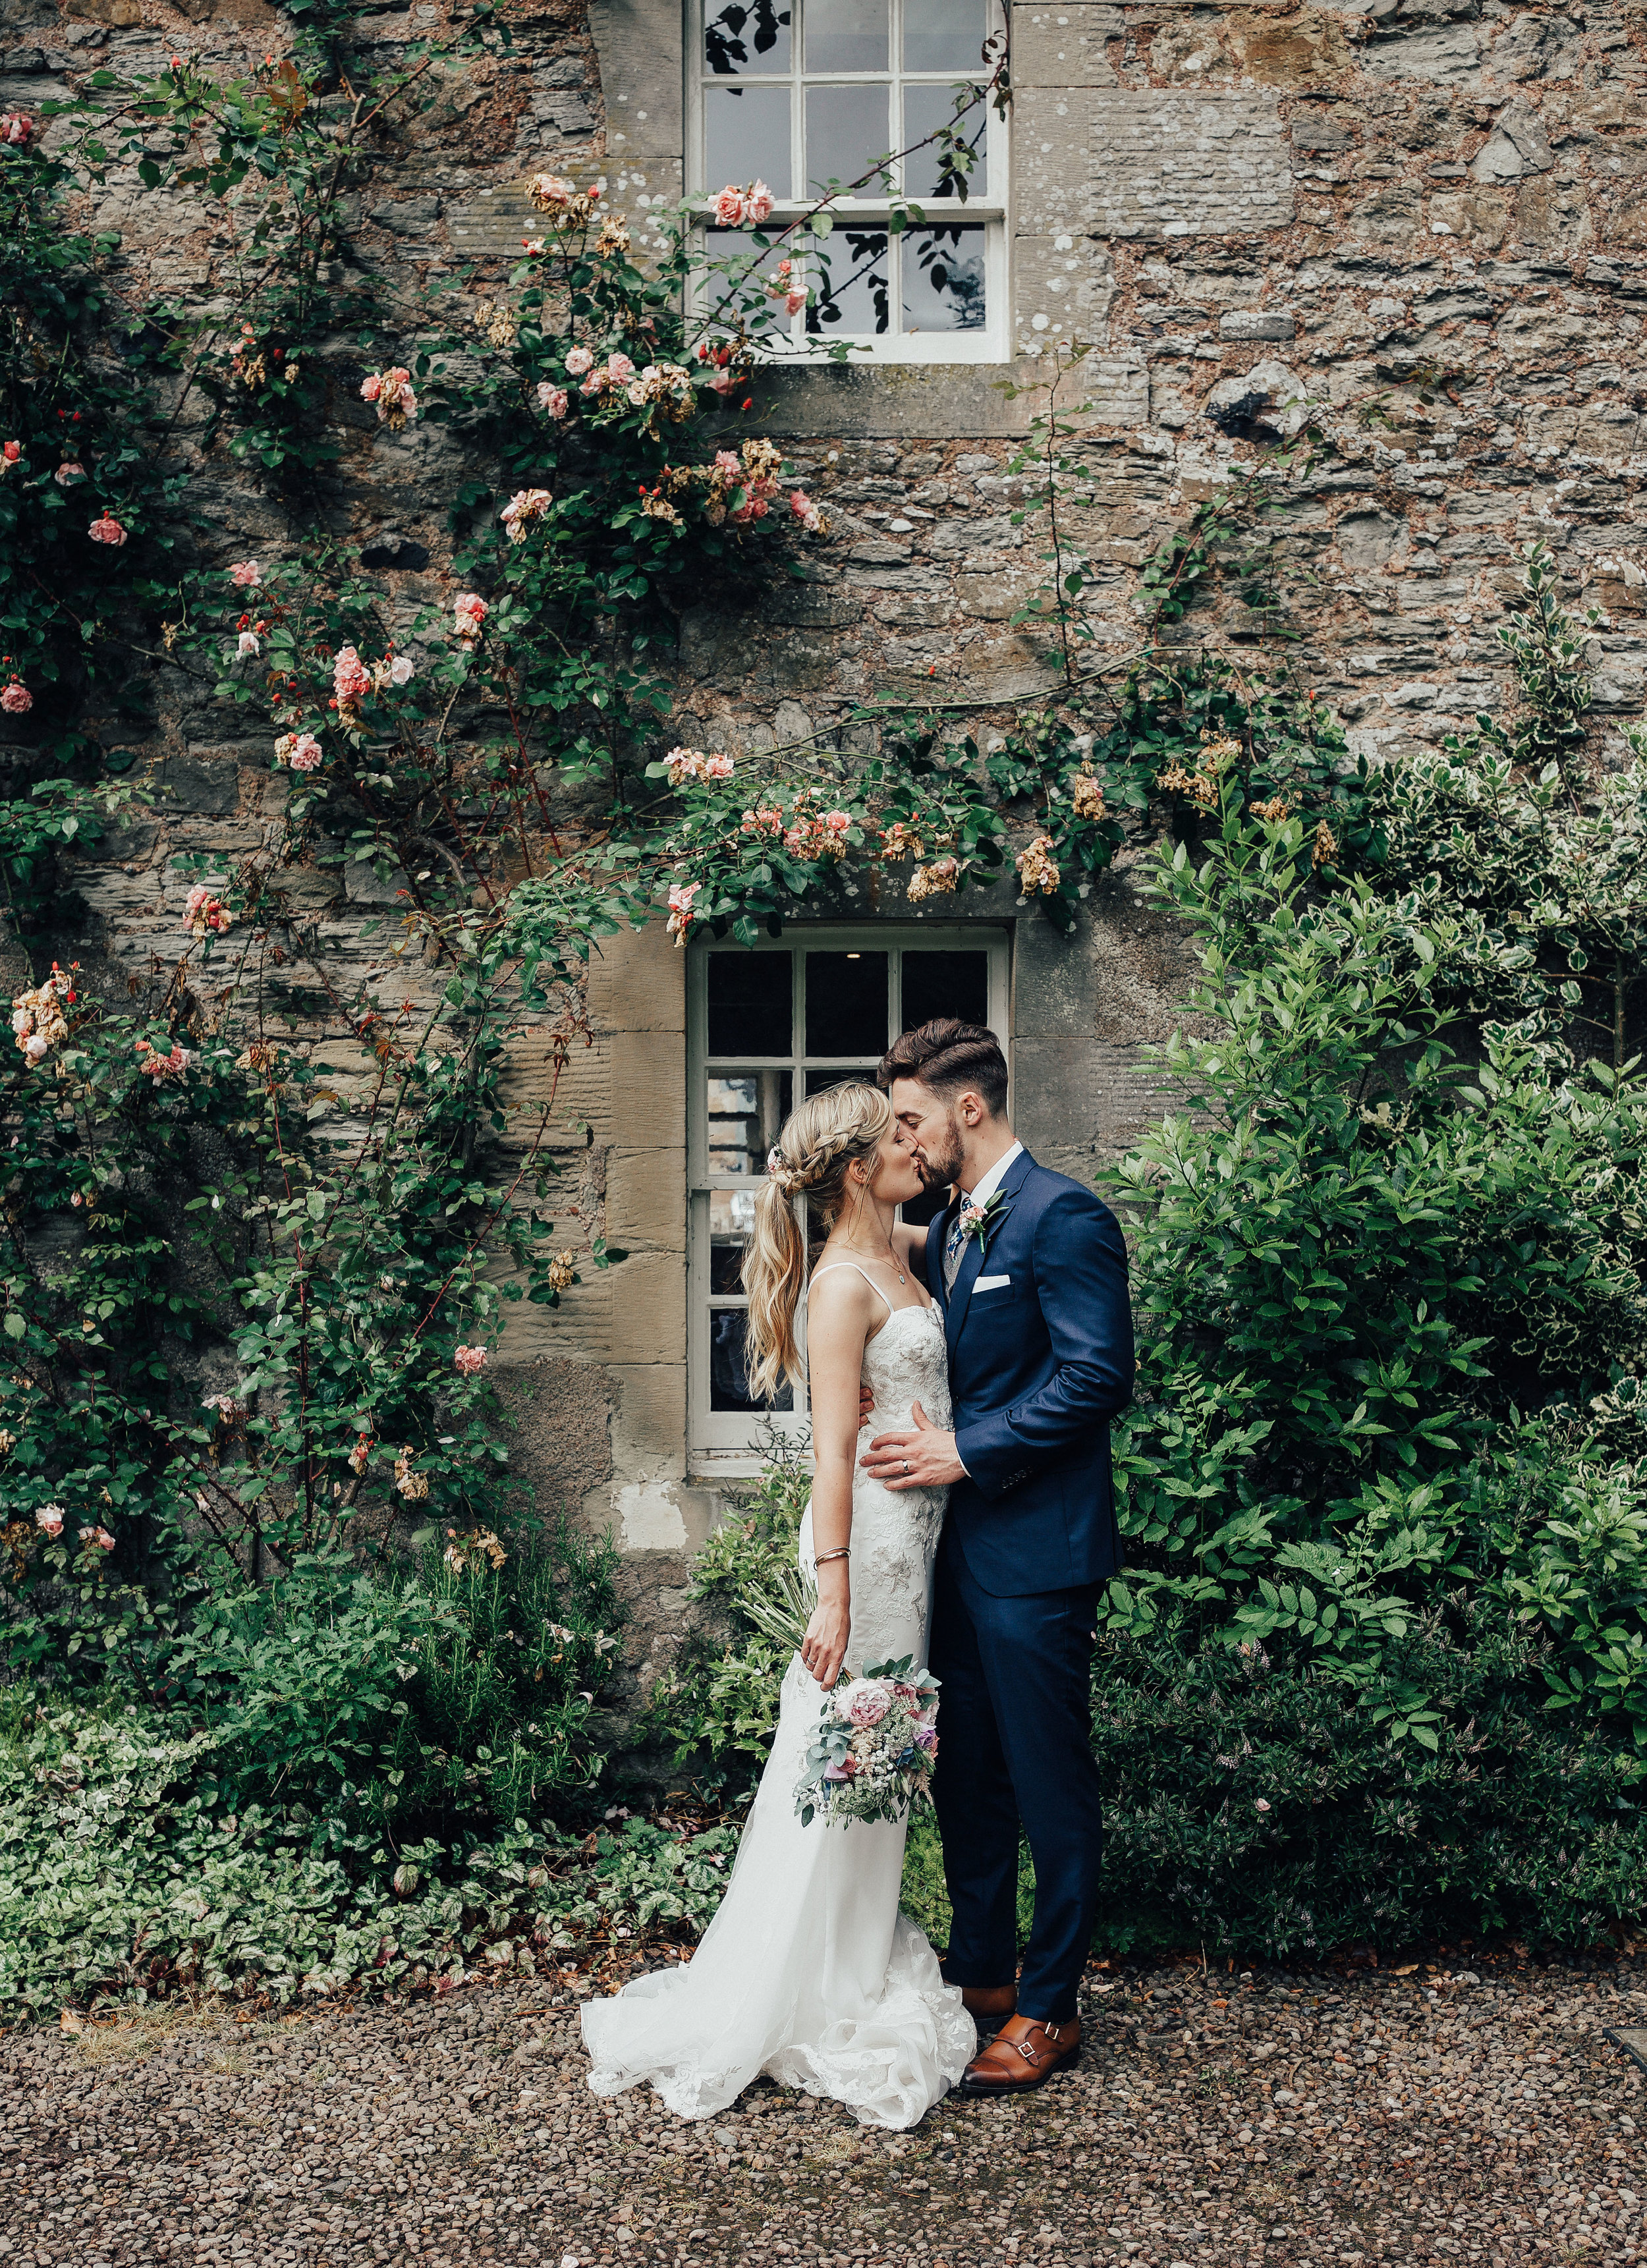 PJ_PHILLIPS_PHOTOGRAPHY_EDINBURGH_WEDDERBURN_BARNS_WEDDING_EDINBURGH_WEDDING_PHOTOGRAPHER_99.jpg